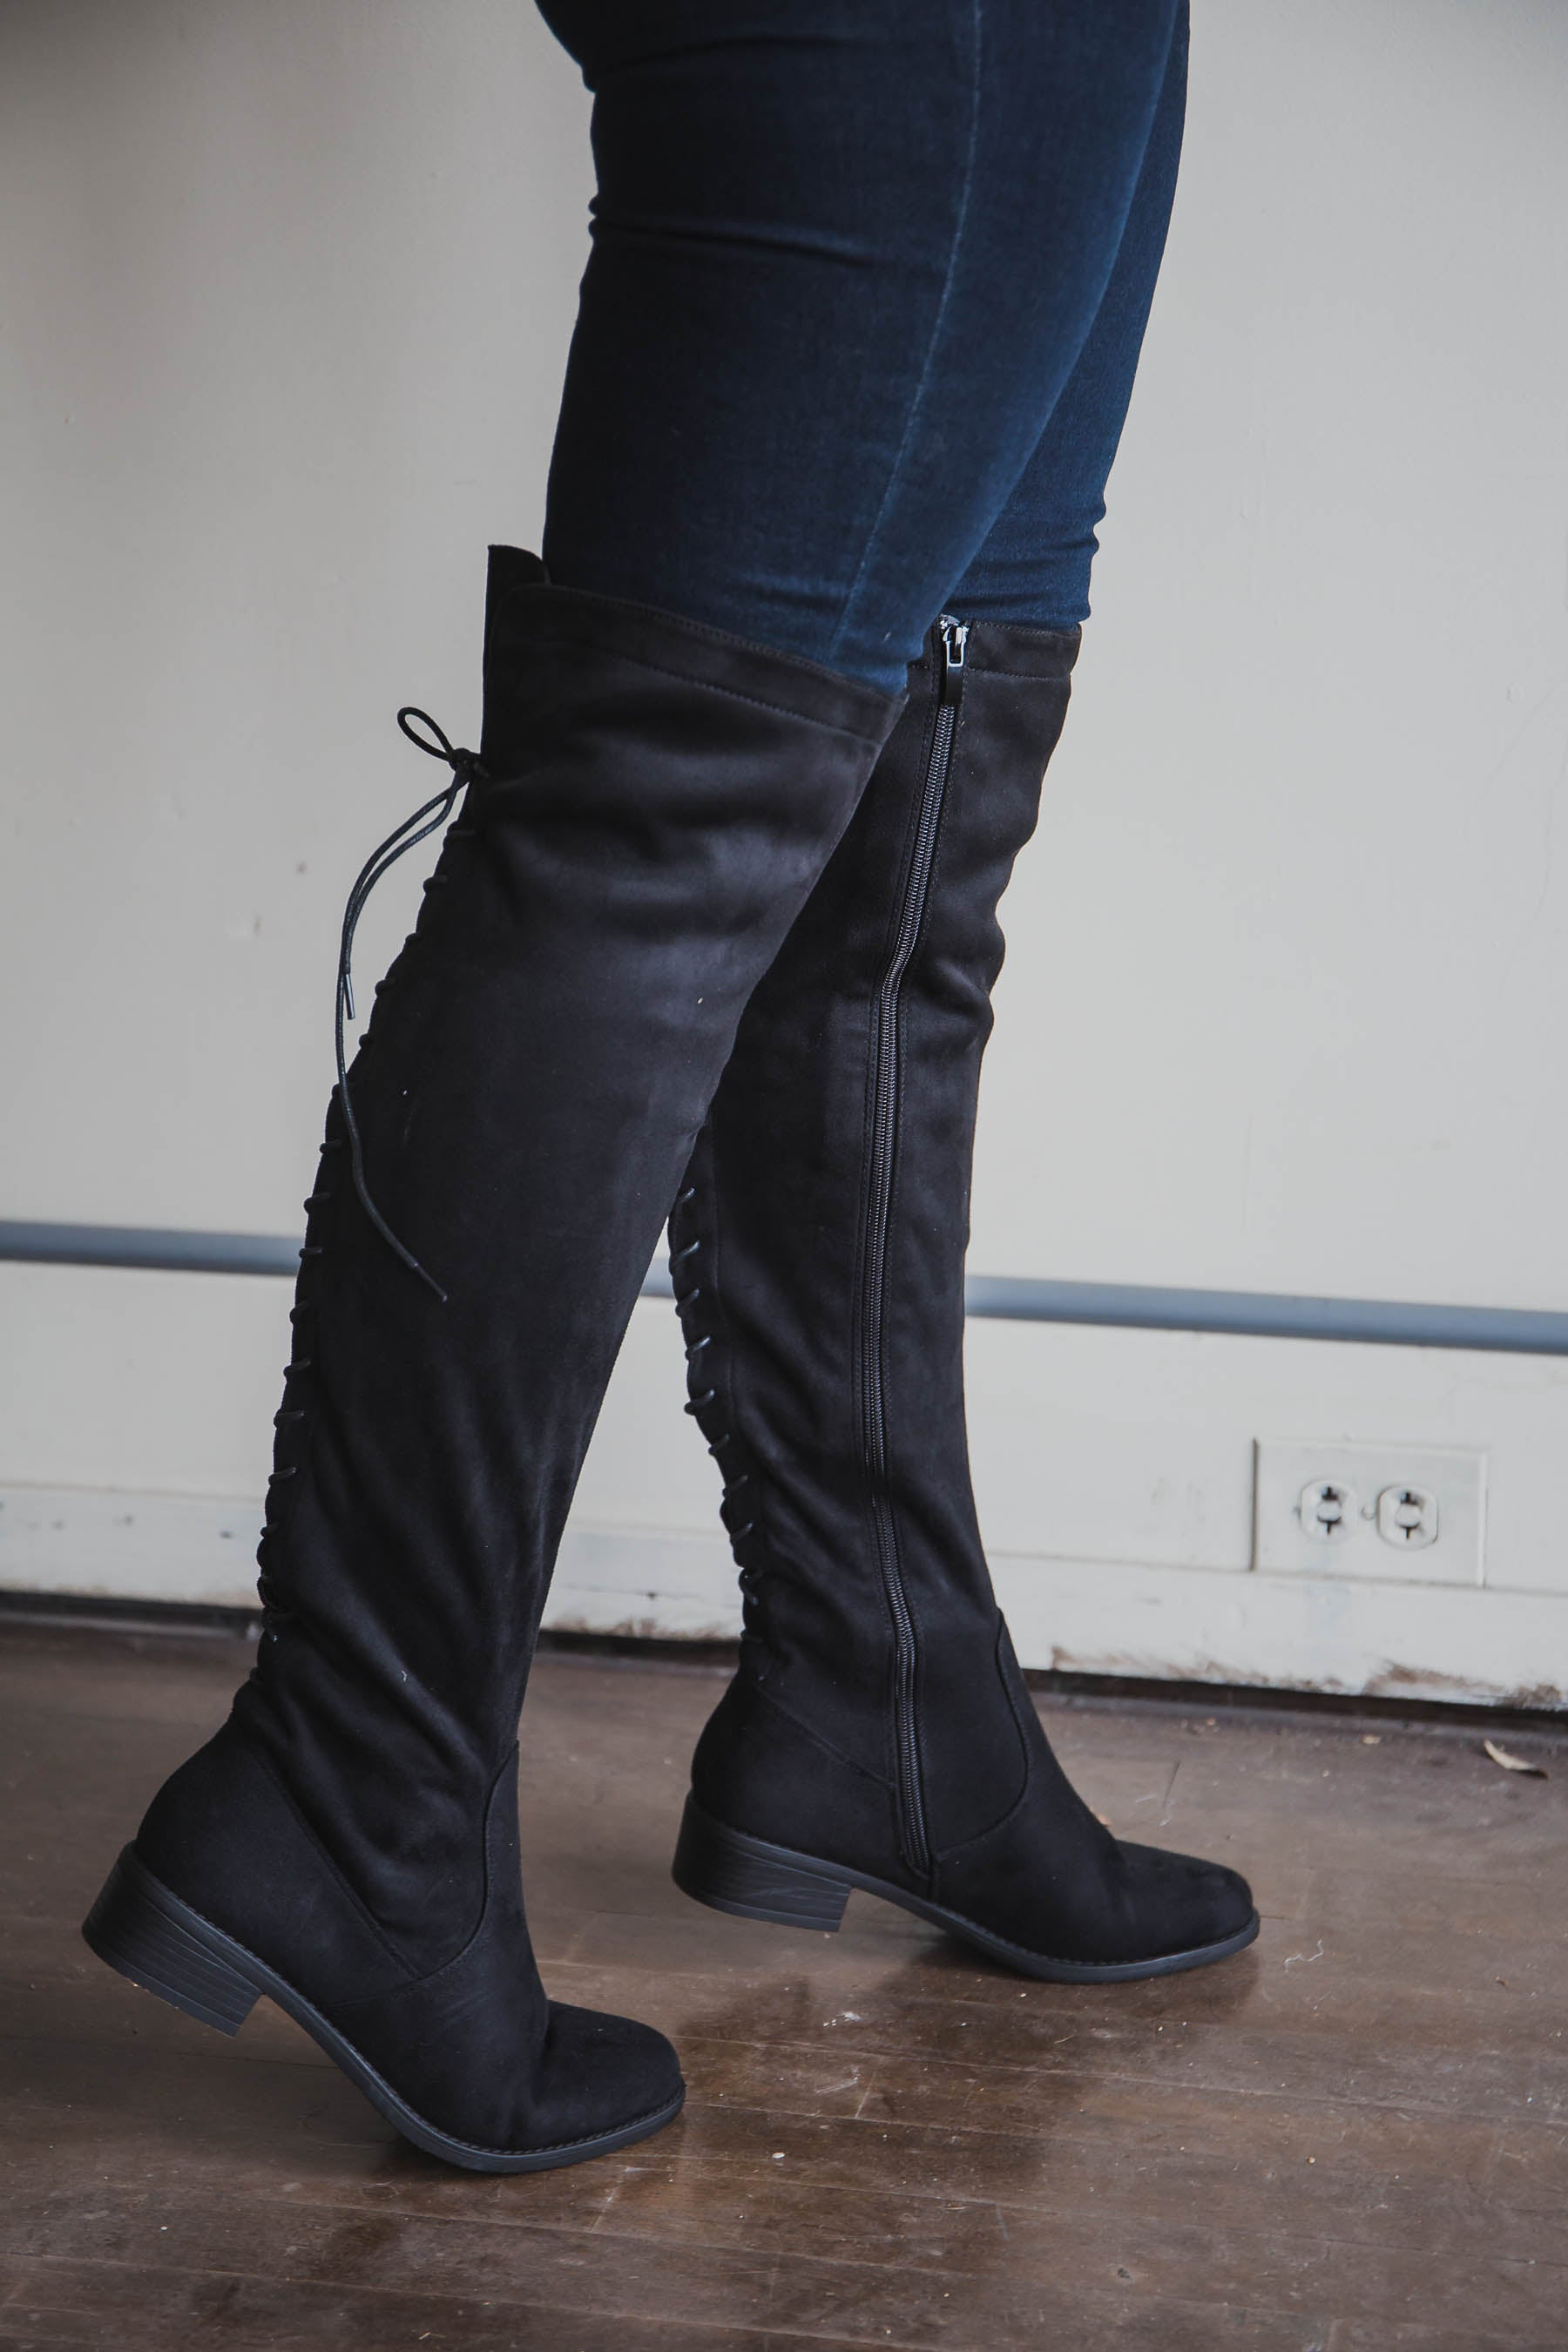 Jones Lace-Up Over-the-Knee Boots